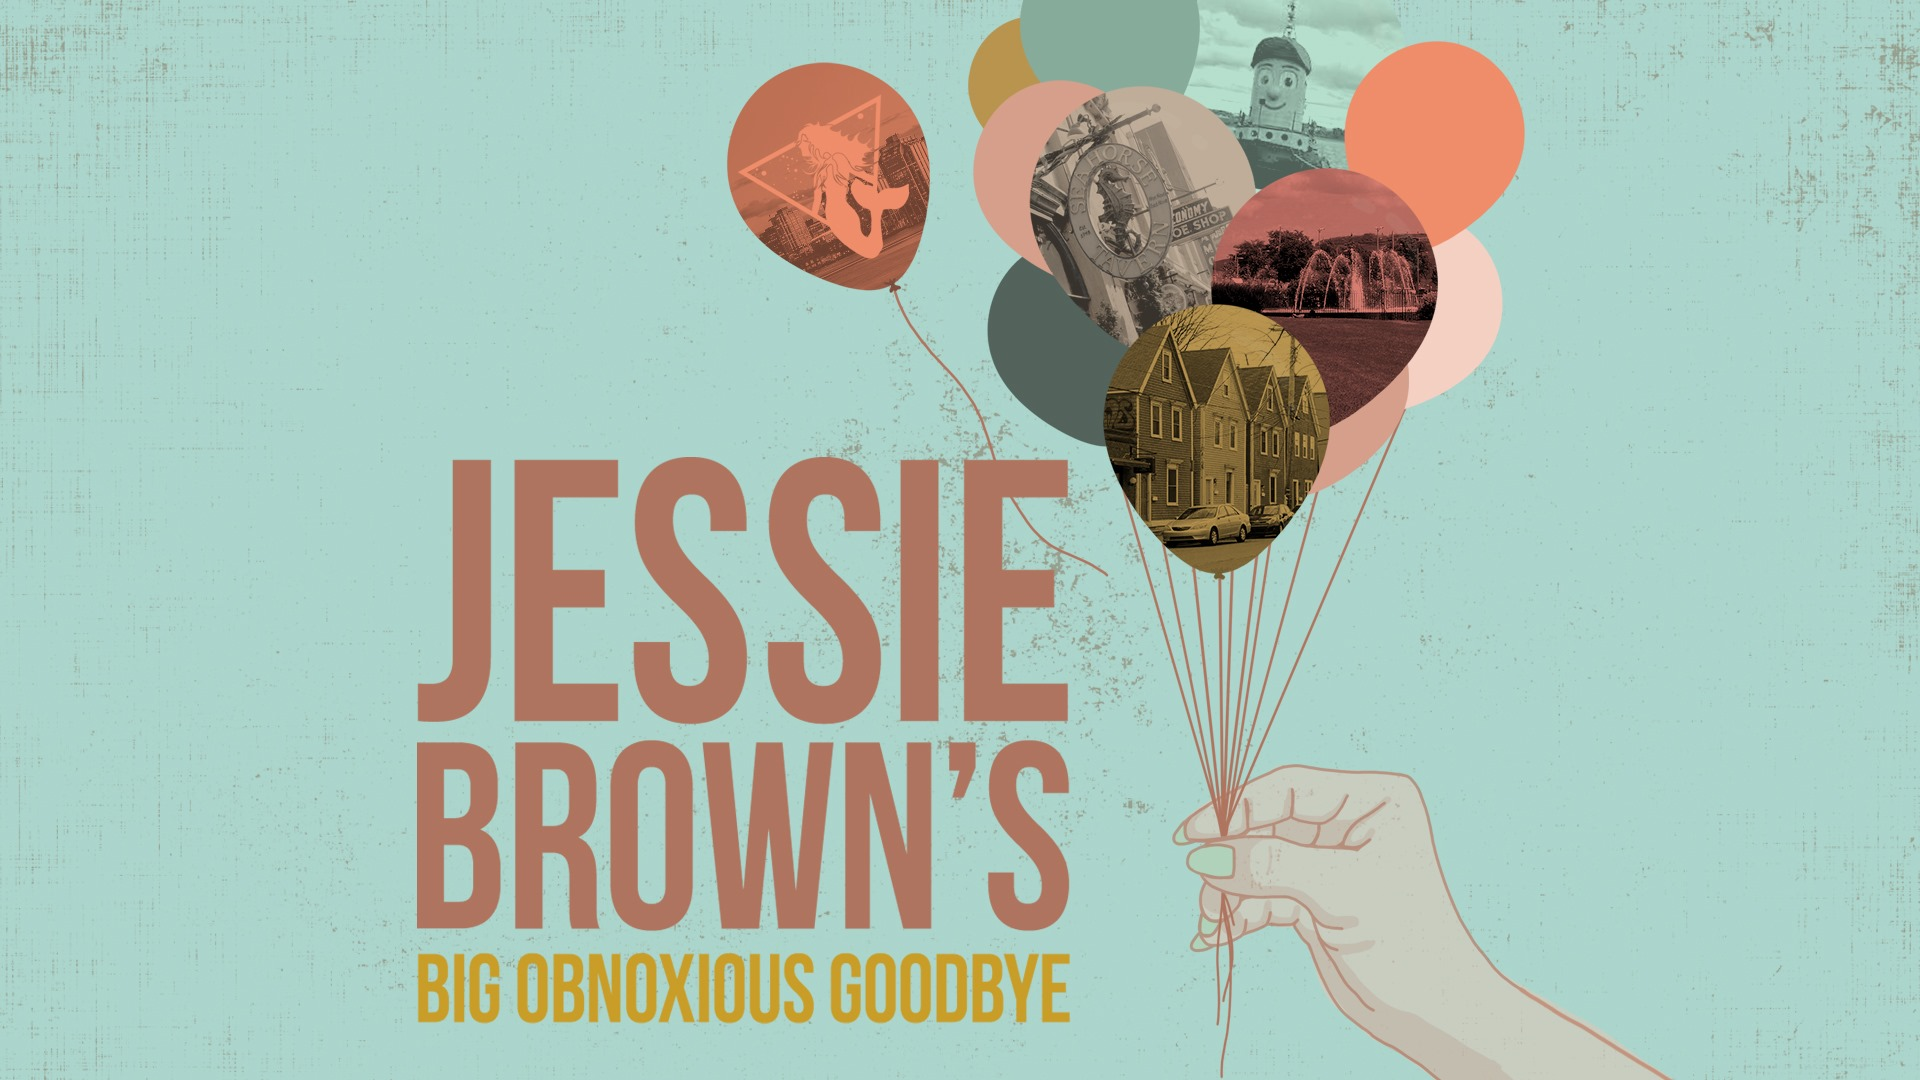 Saturday, August 17, 2019 at 9 PM – 1 AM   The Marquee Ballroom   2037 Gottingen Street, Halifax, Nova Scotia  This is going to be a show you don't want to miss! The lovely  Jessie Brown is leaving us for a bigger city and this show will be the greatest send off! so grab those tickets and show her a solid Halifax send off!